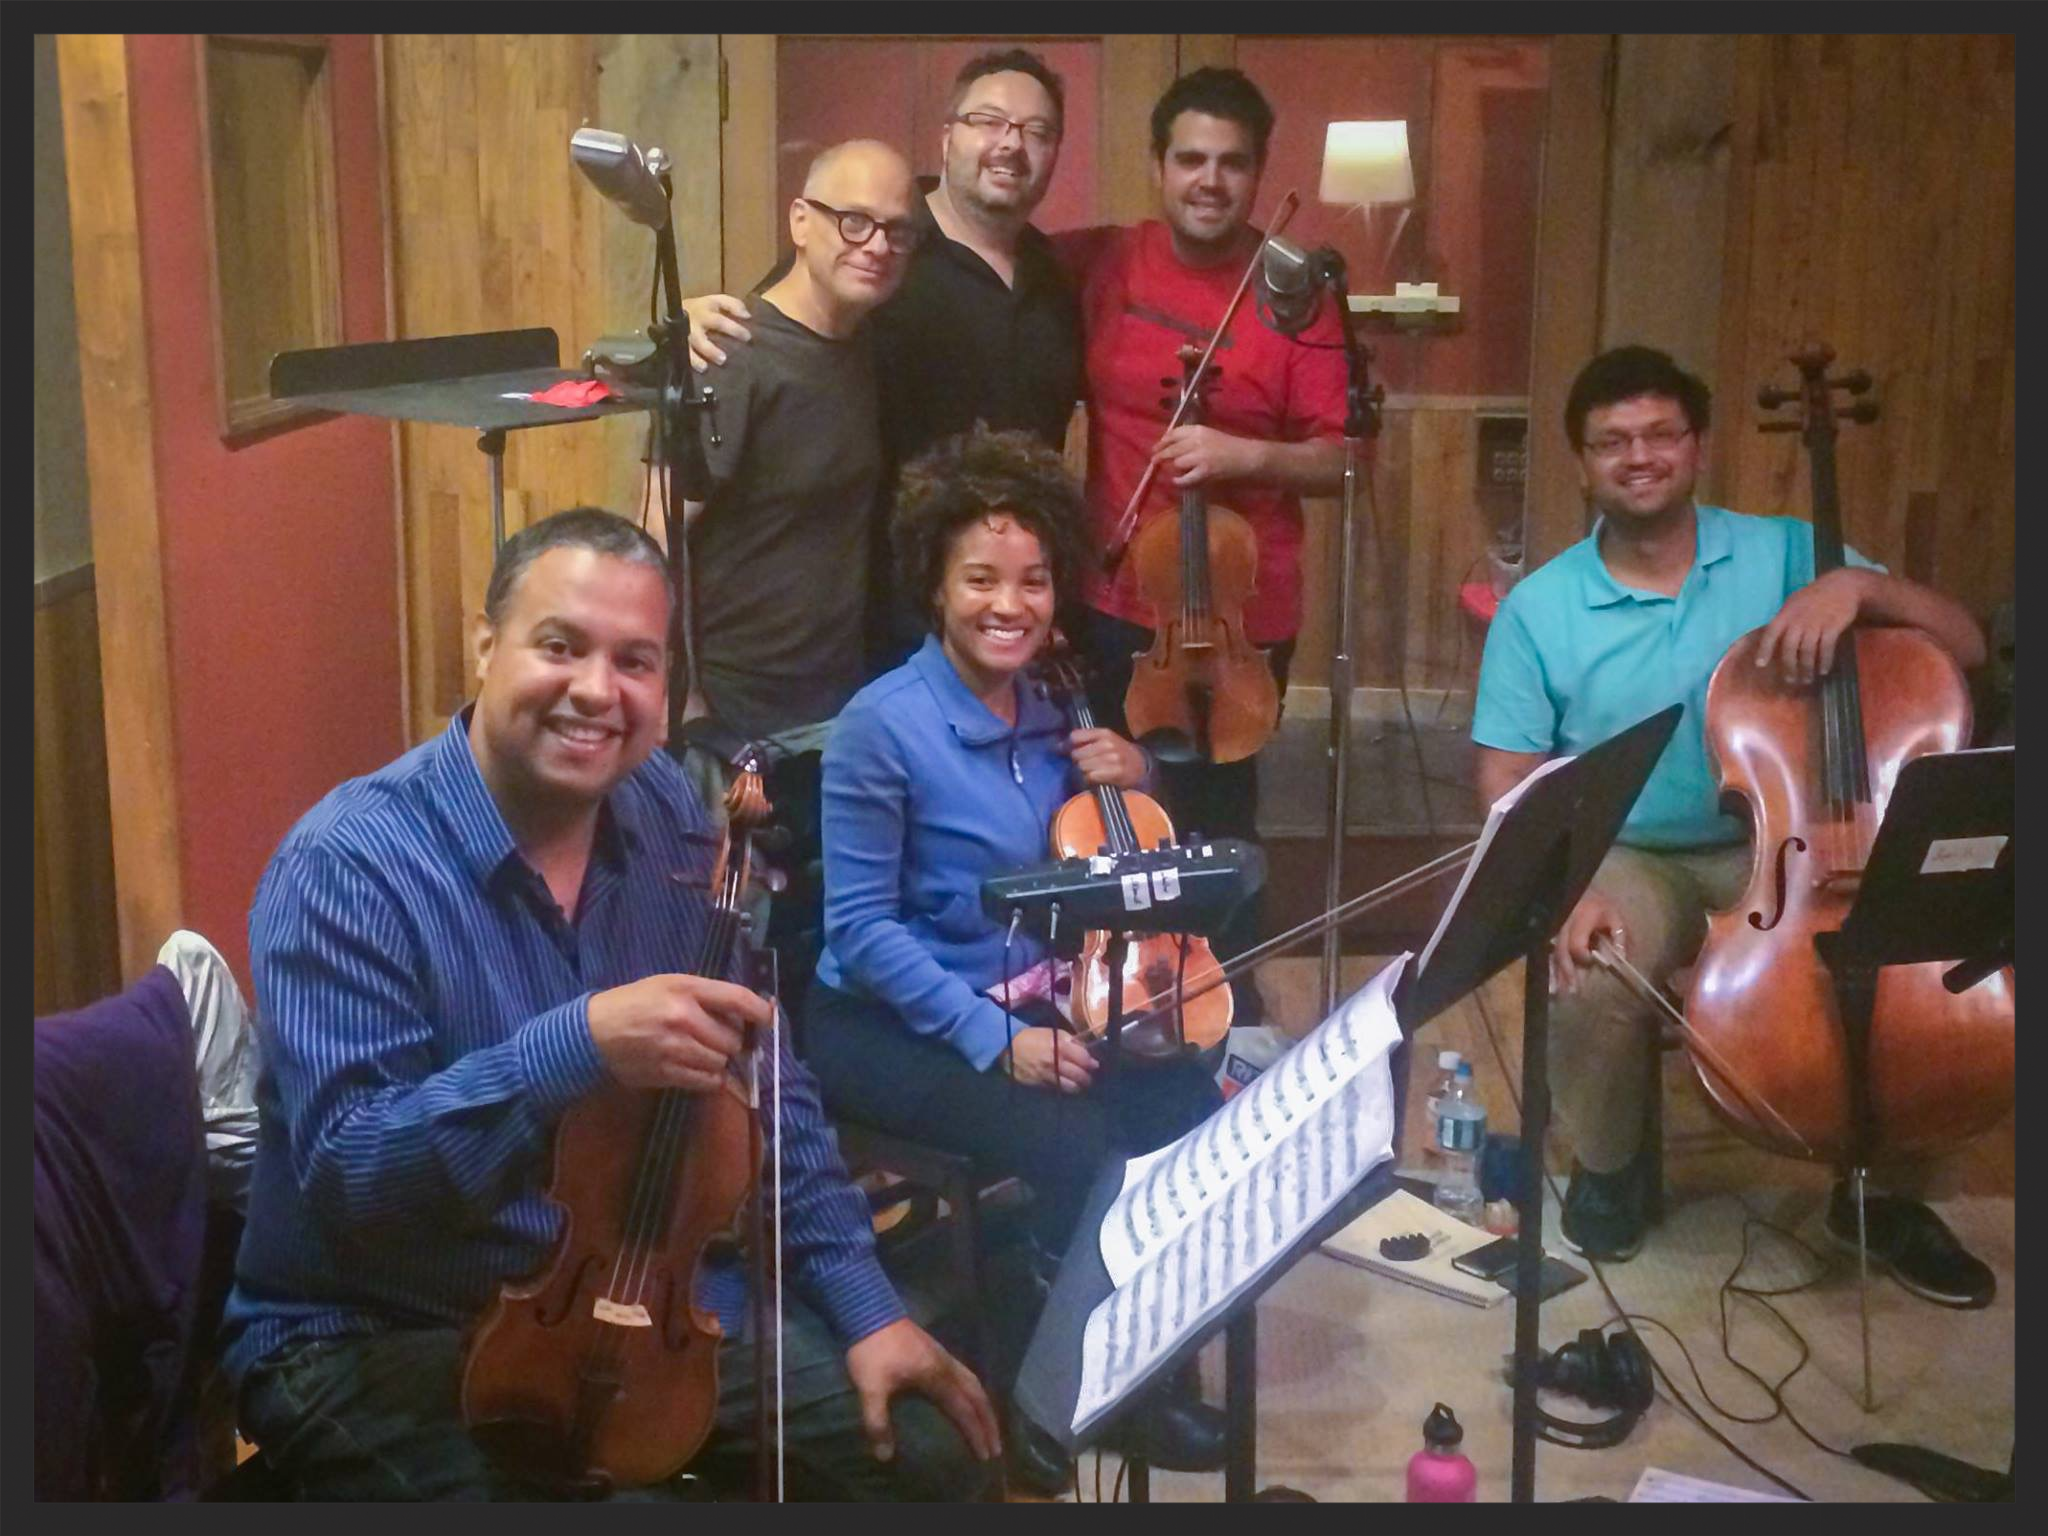 DAVID LANG AND THE HARLEM STRING QUARTET RECORDING  the difficulty of Crossing a field